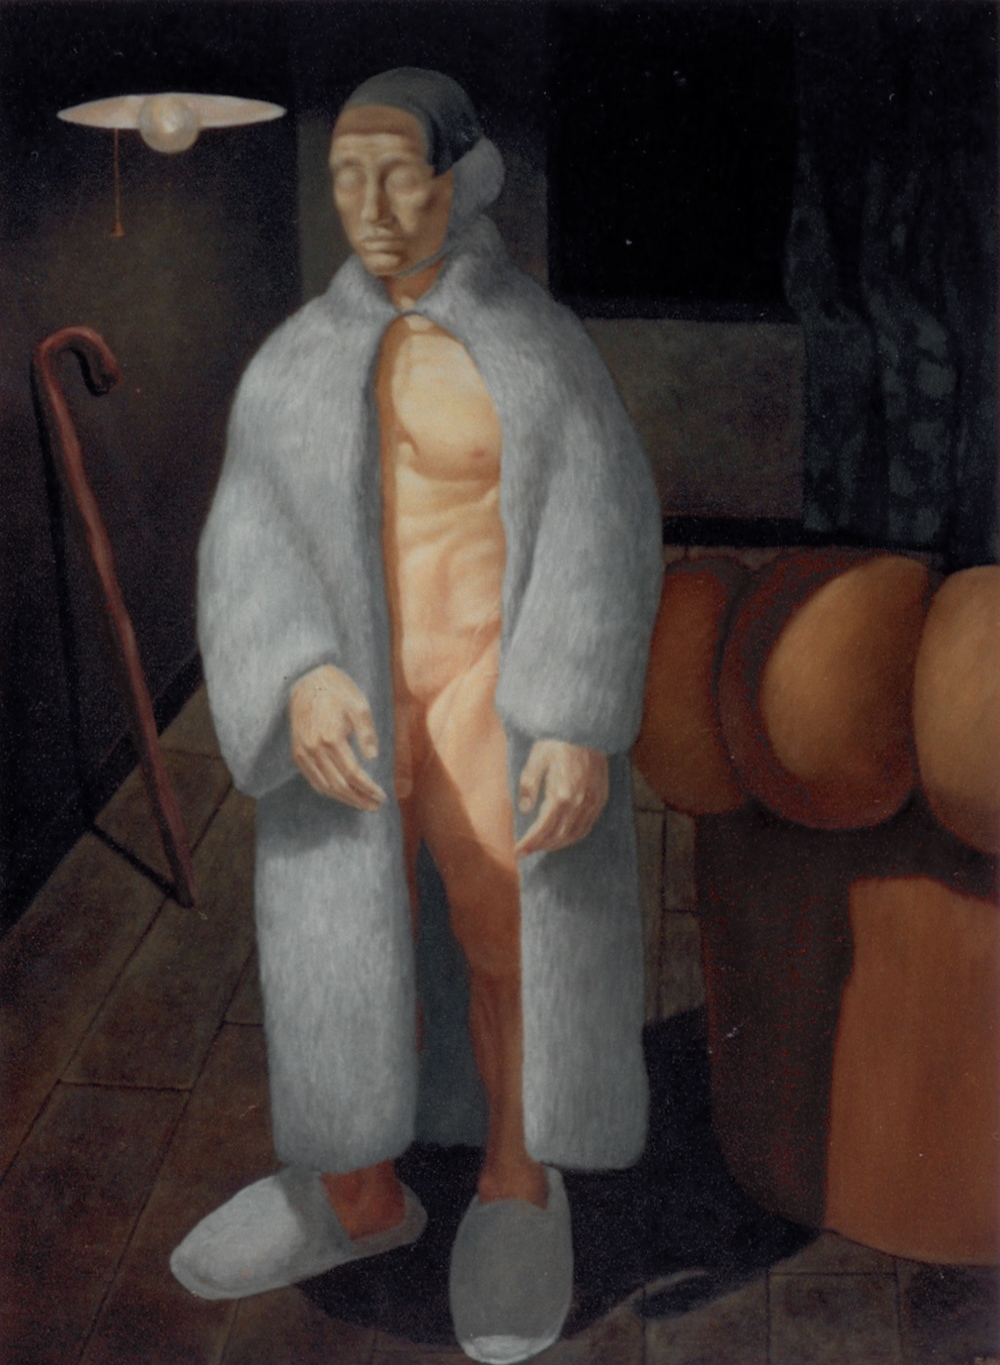 A Man in a Room with a Cane